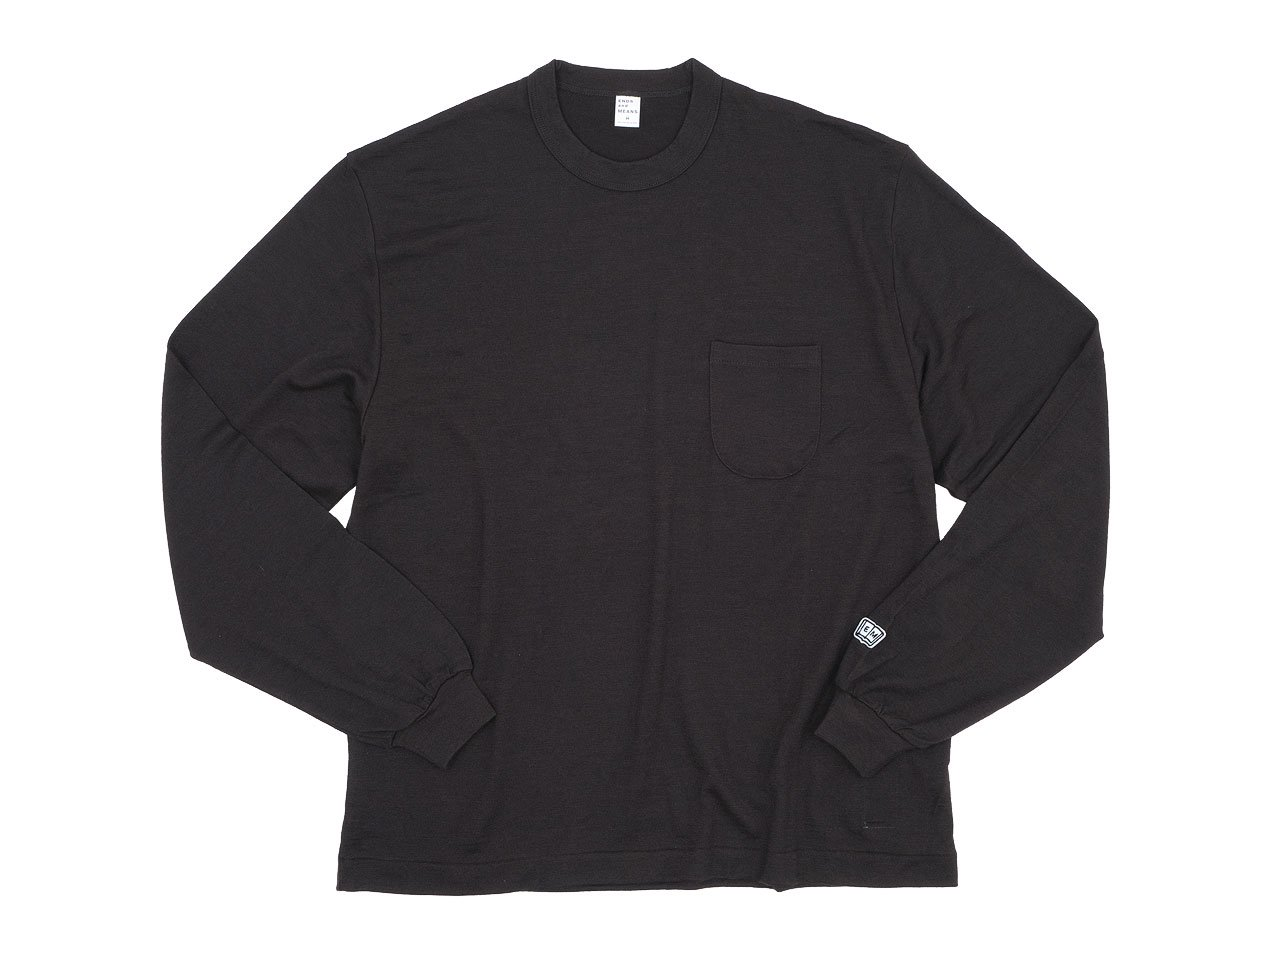 ENDS and MEANS Pocket L/S tee DARK BROWN